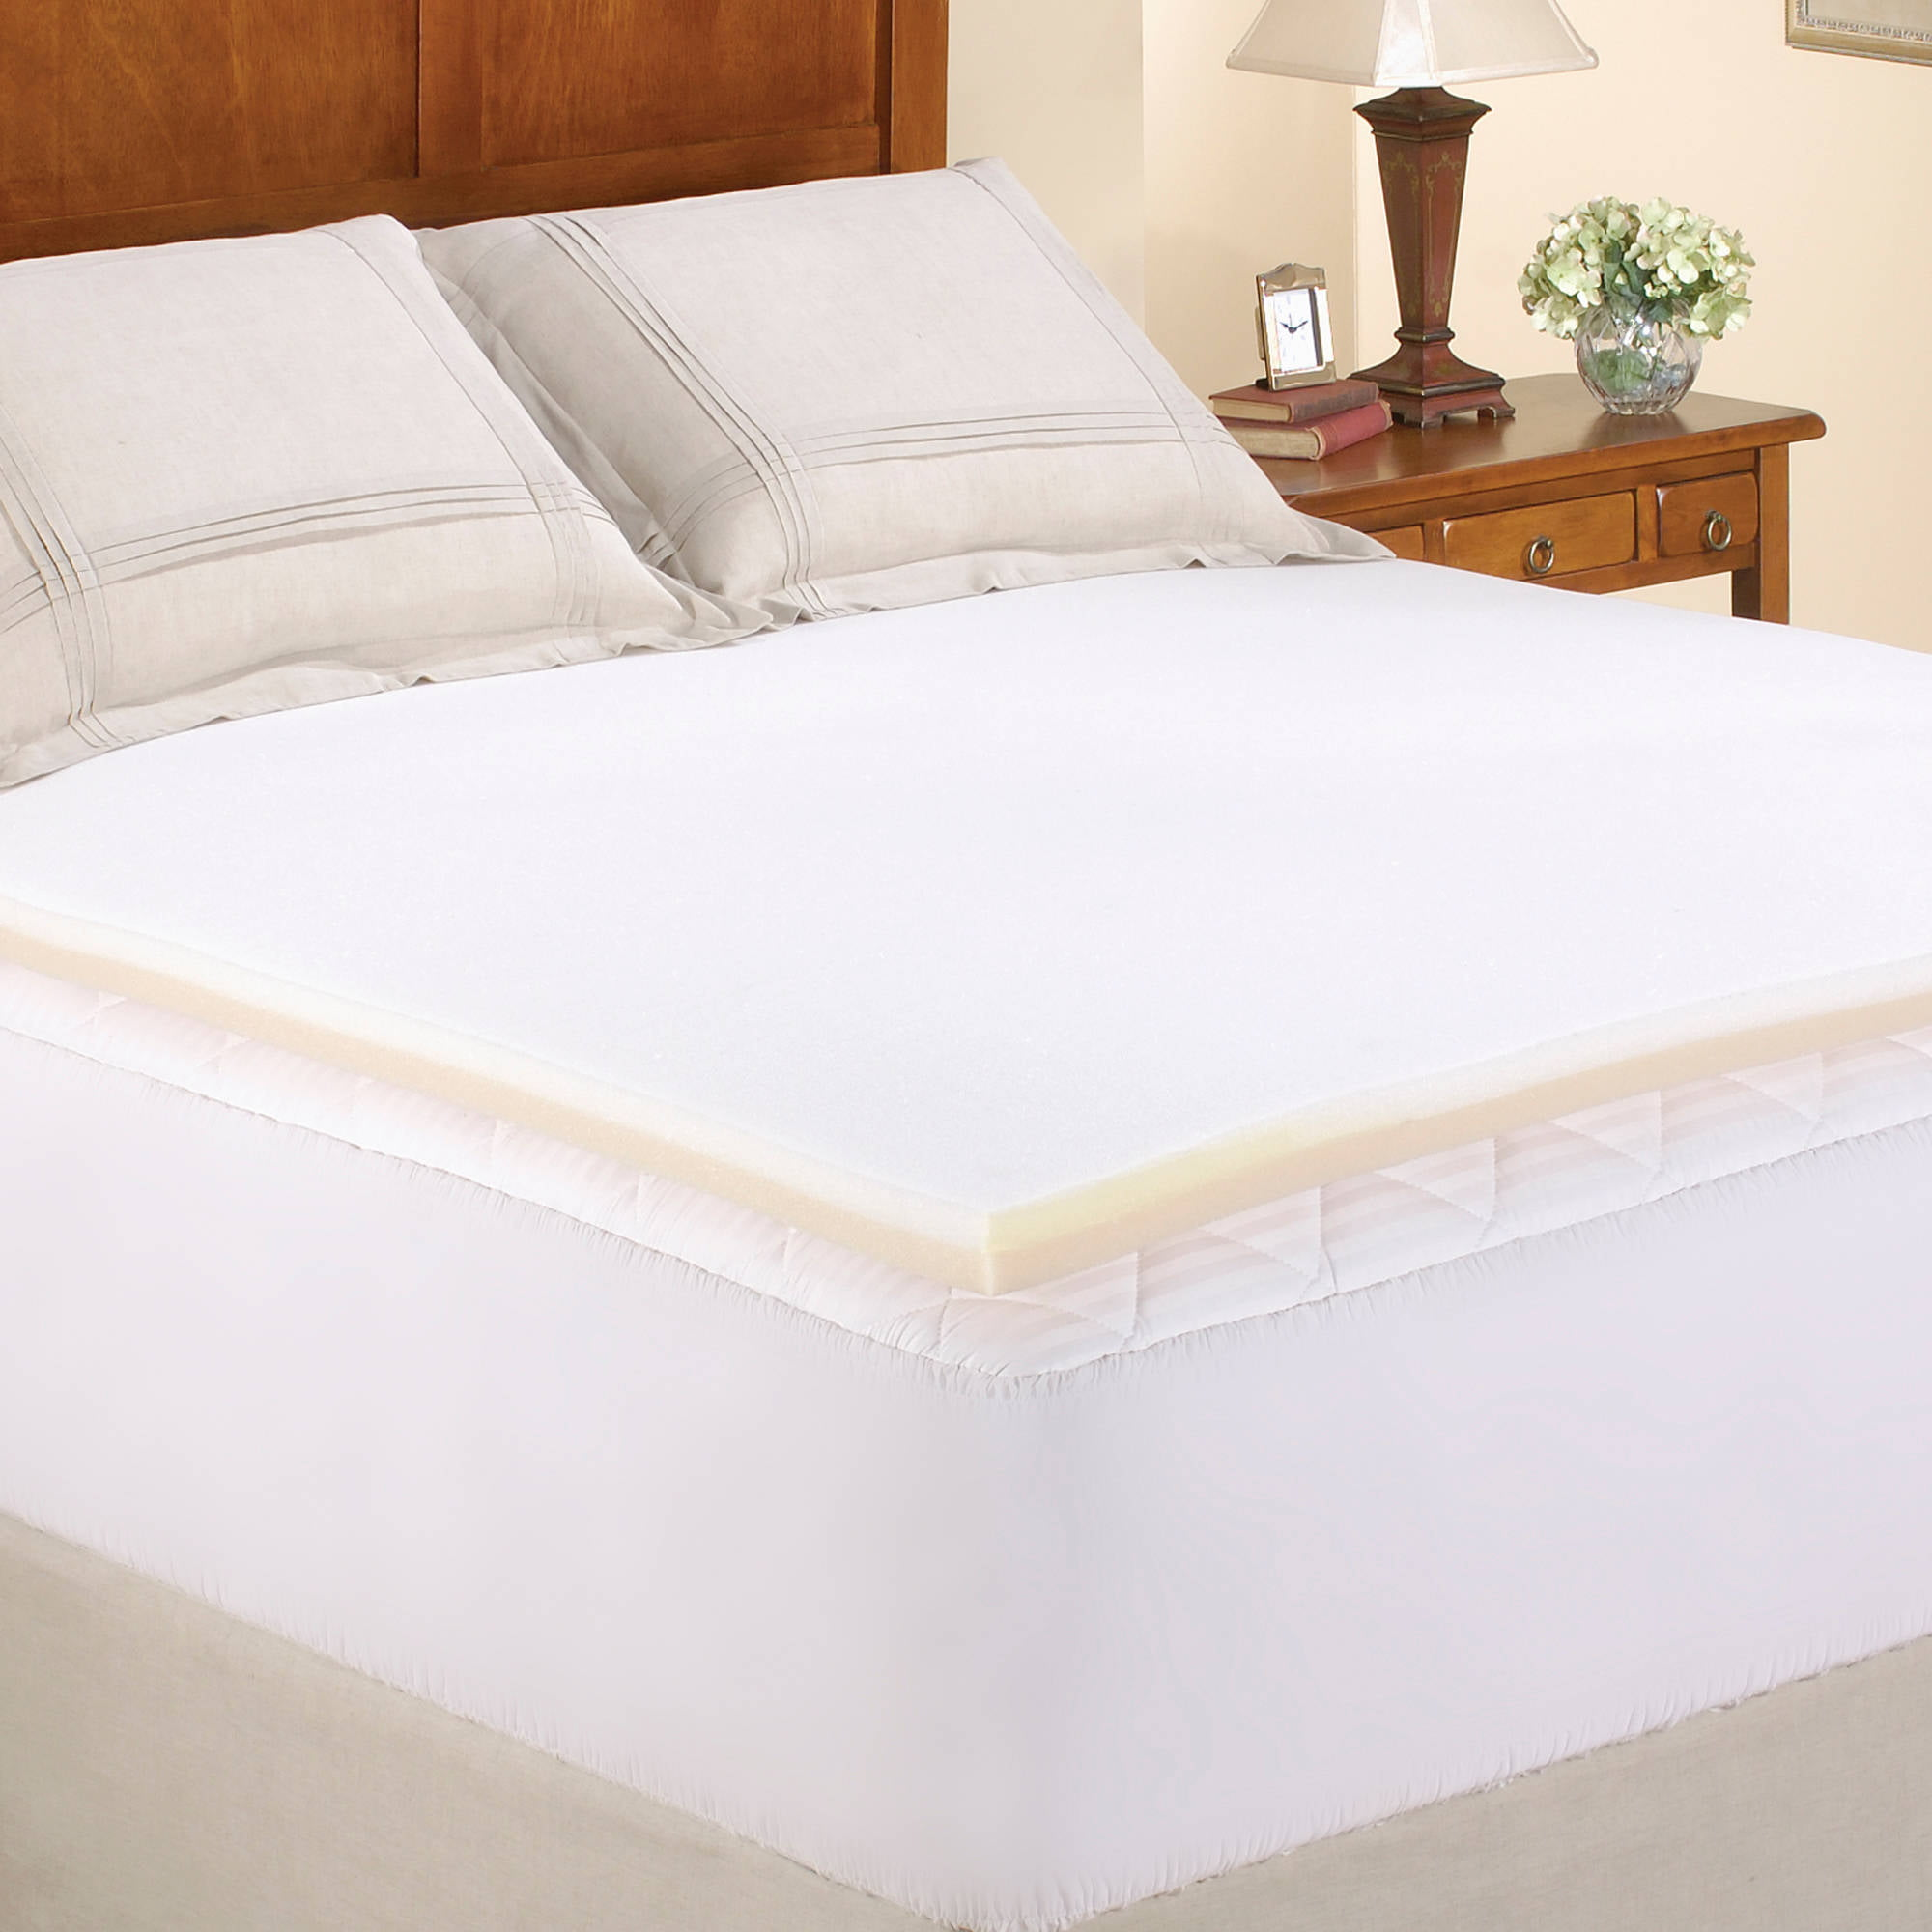 qvc topper memory toppers evolution comfort watch mattress down feather on foam